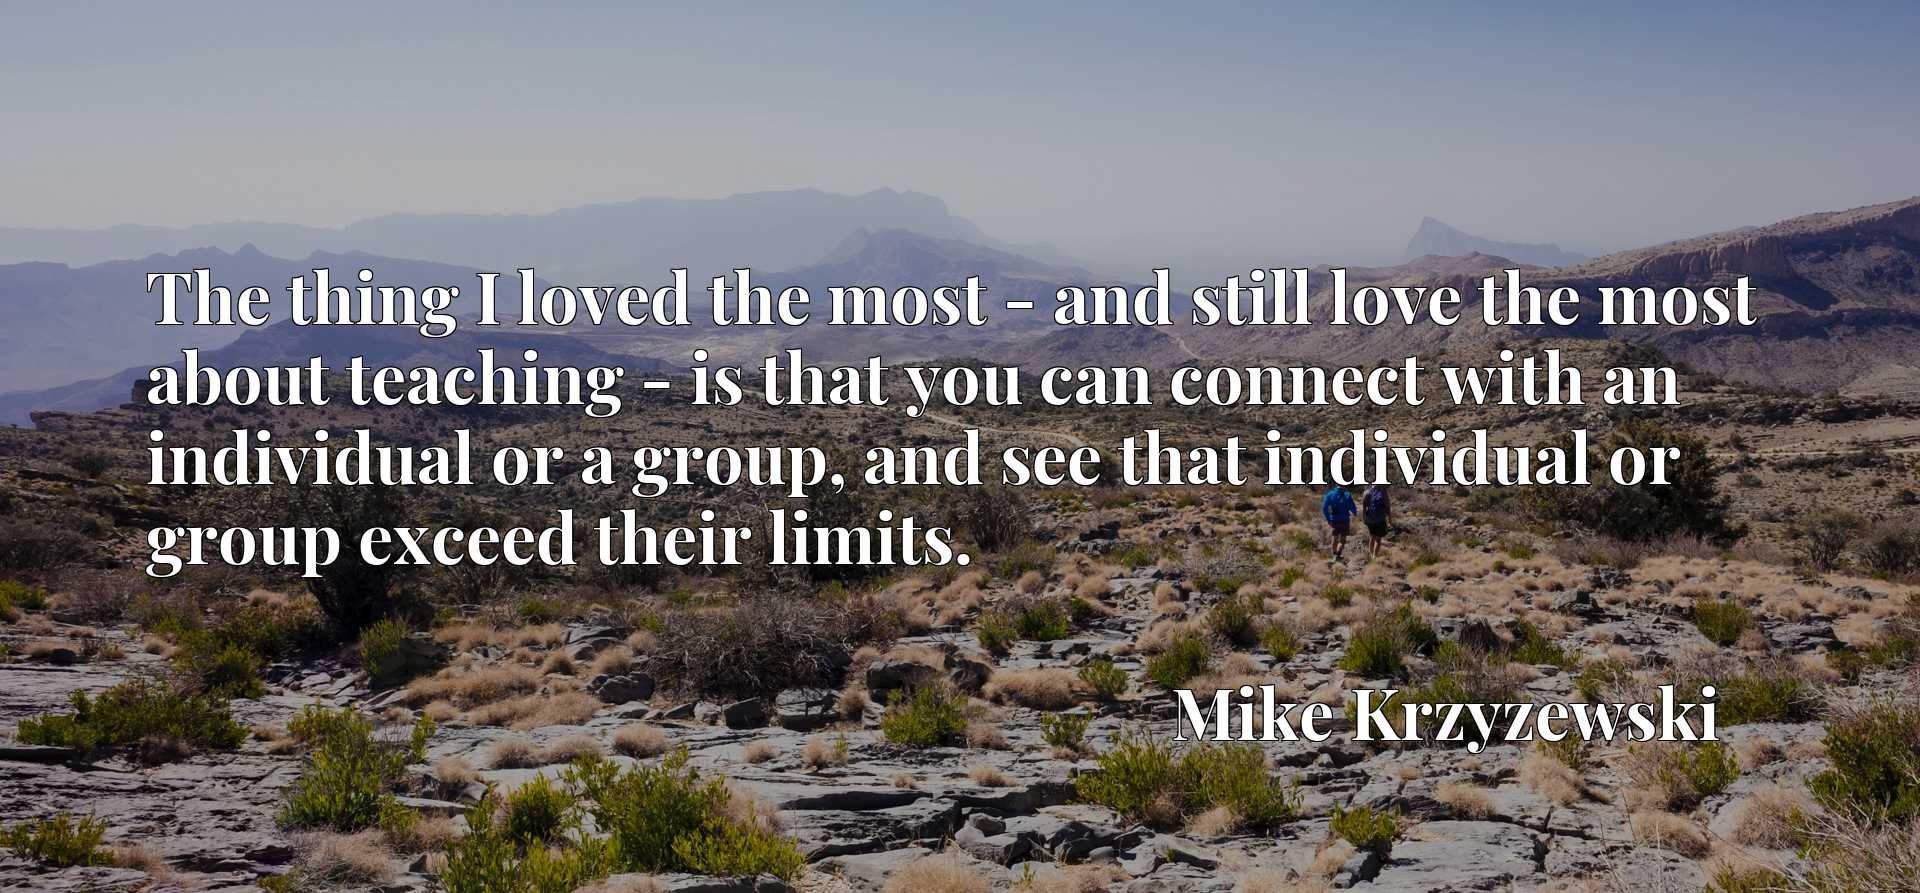 Quote Picture :The thing I loved the most - and still love the most about teaching - is that you can connect with an individual or a group, and see that individual or group exceed their limits.